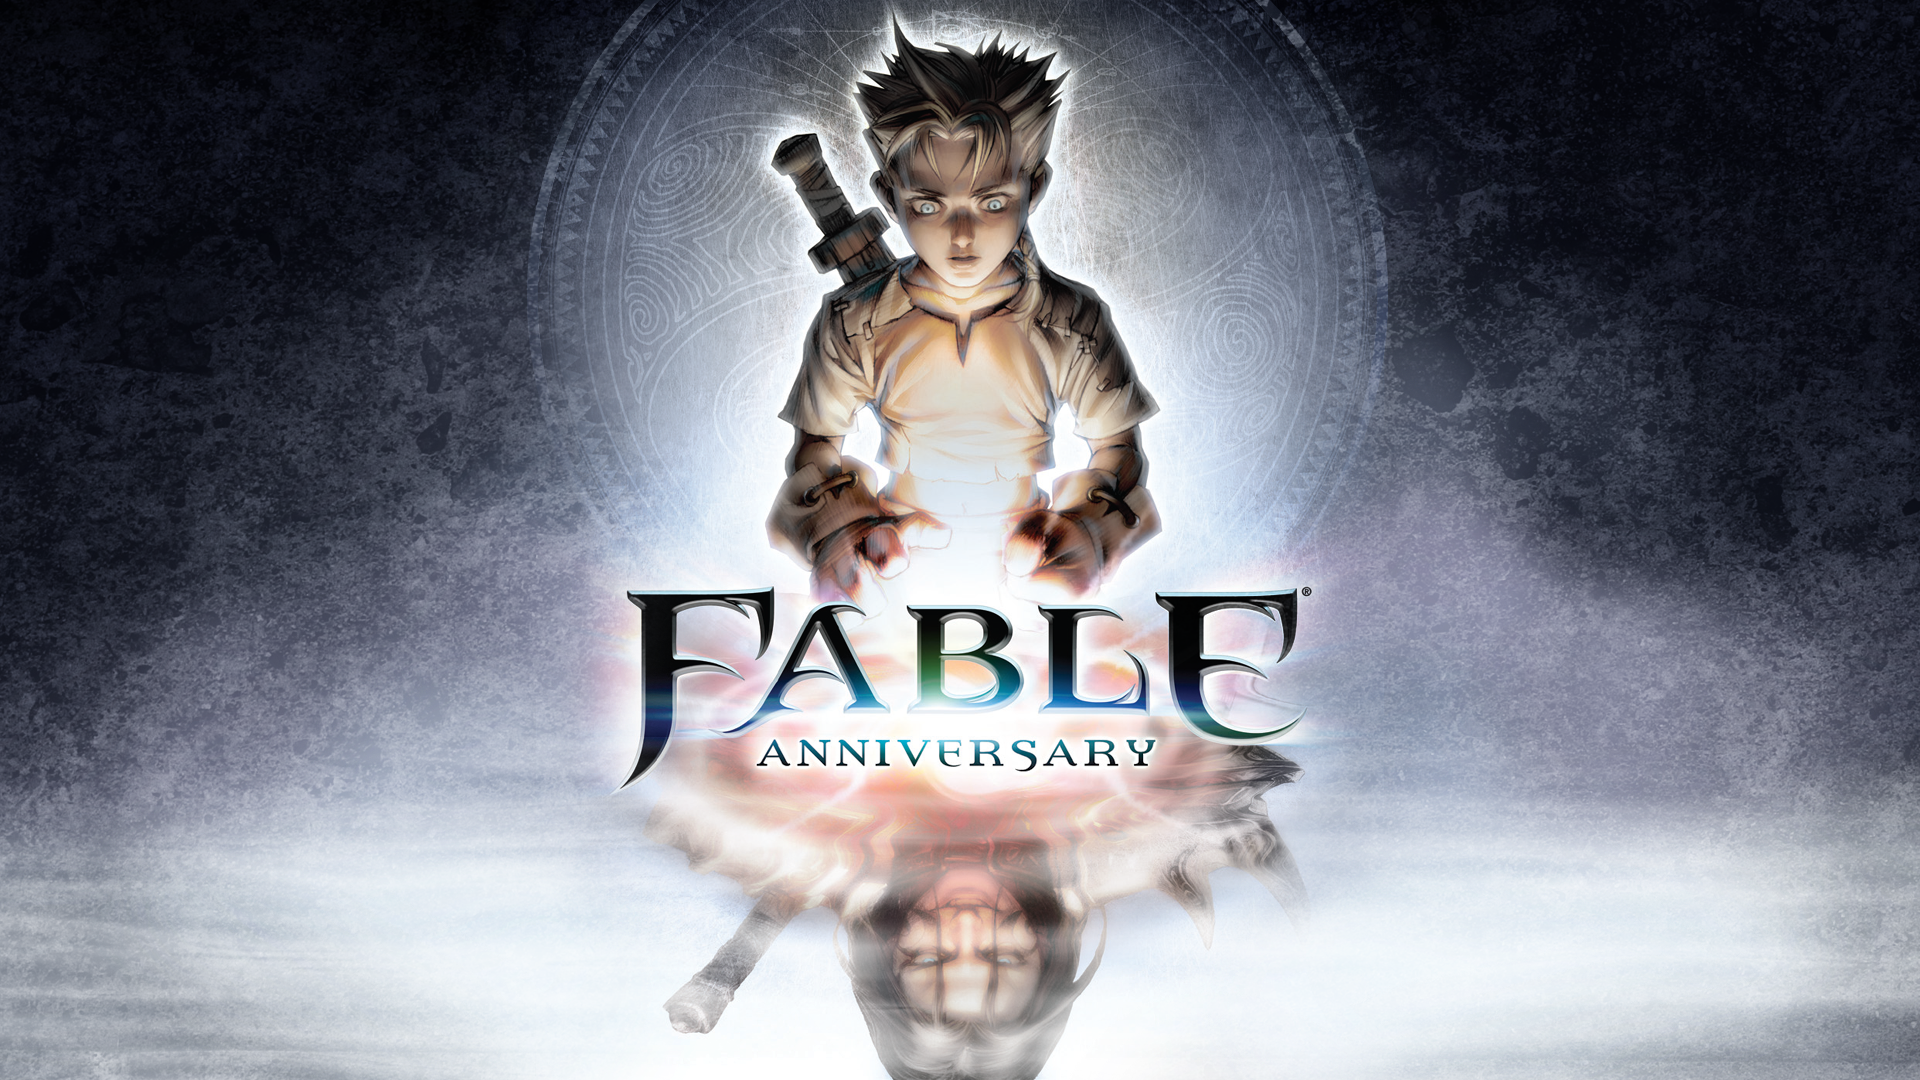 High Quality Fable Wallpapers 2.94 Mb, BsnSCB Graphics